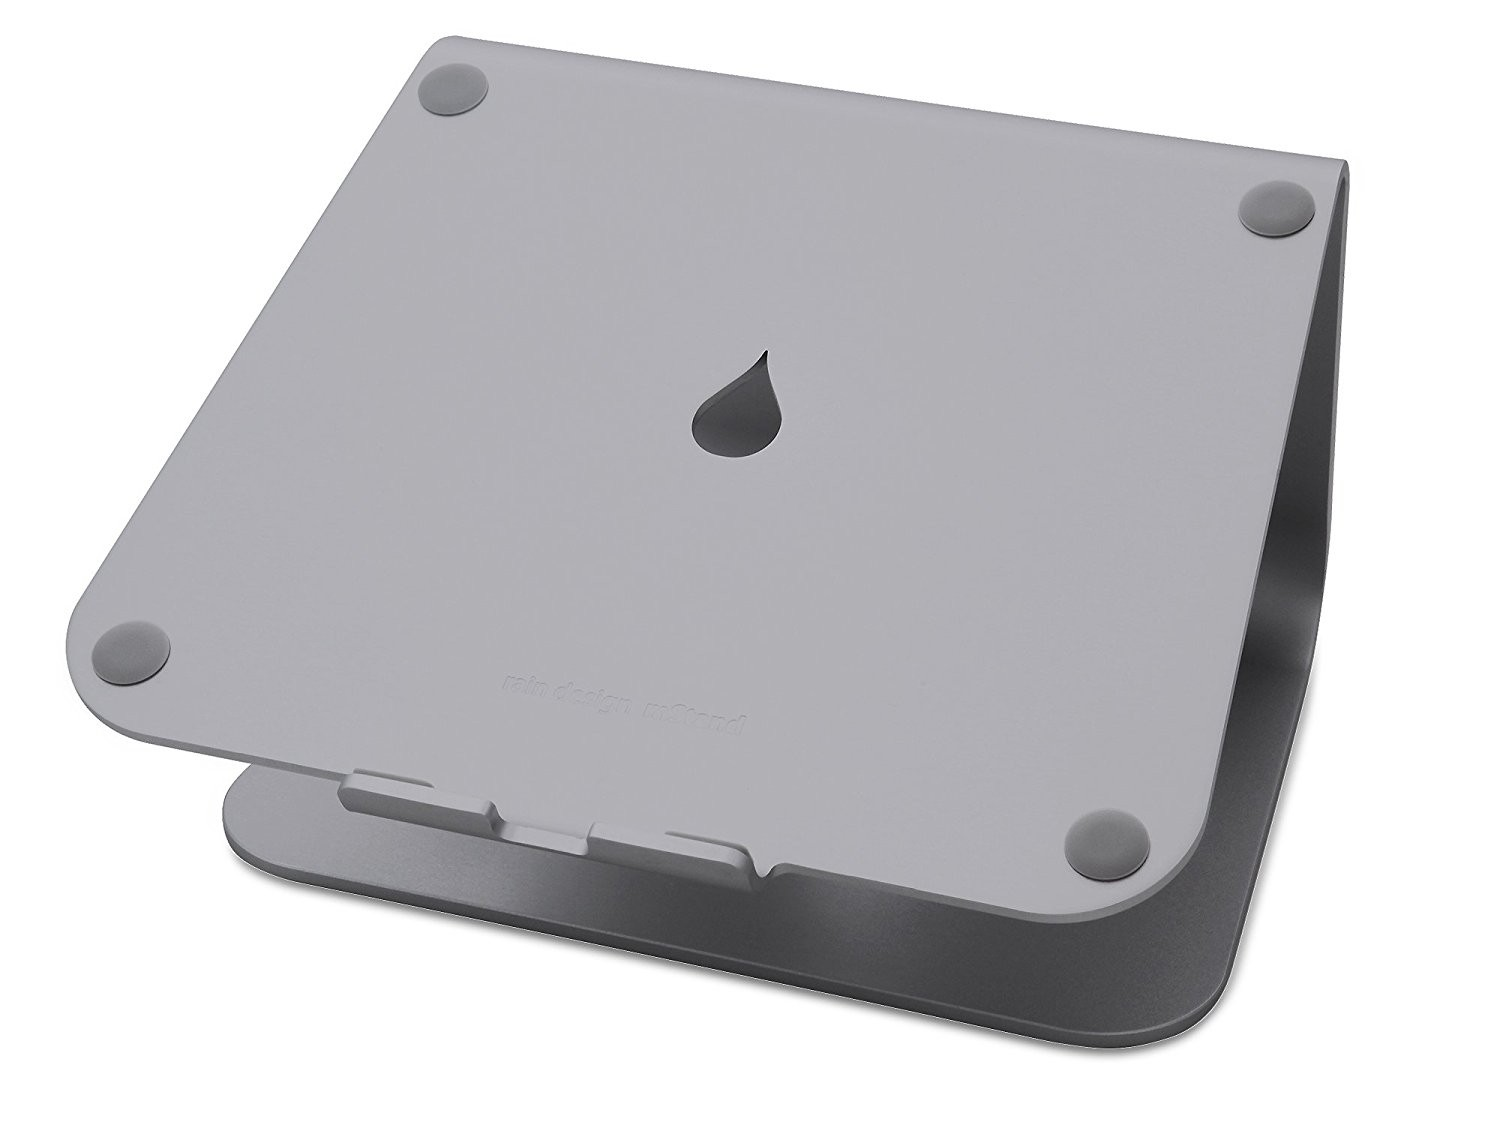 Rain Design mStand360 Laptop Stand with Swivel Base - Space Gray, RAIN10074